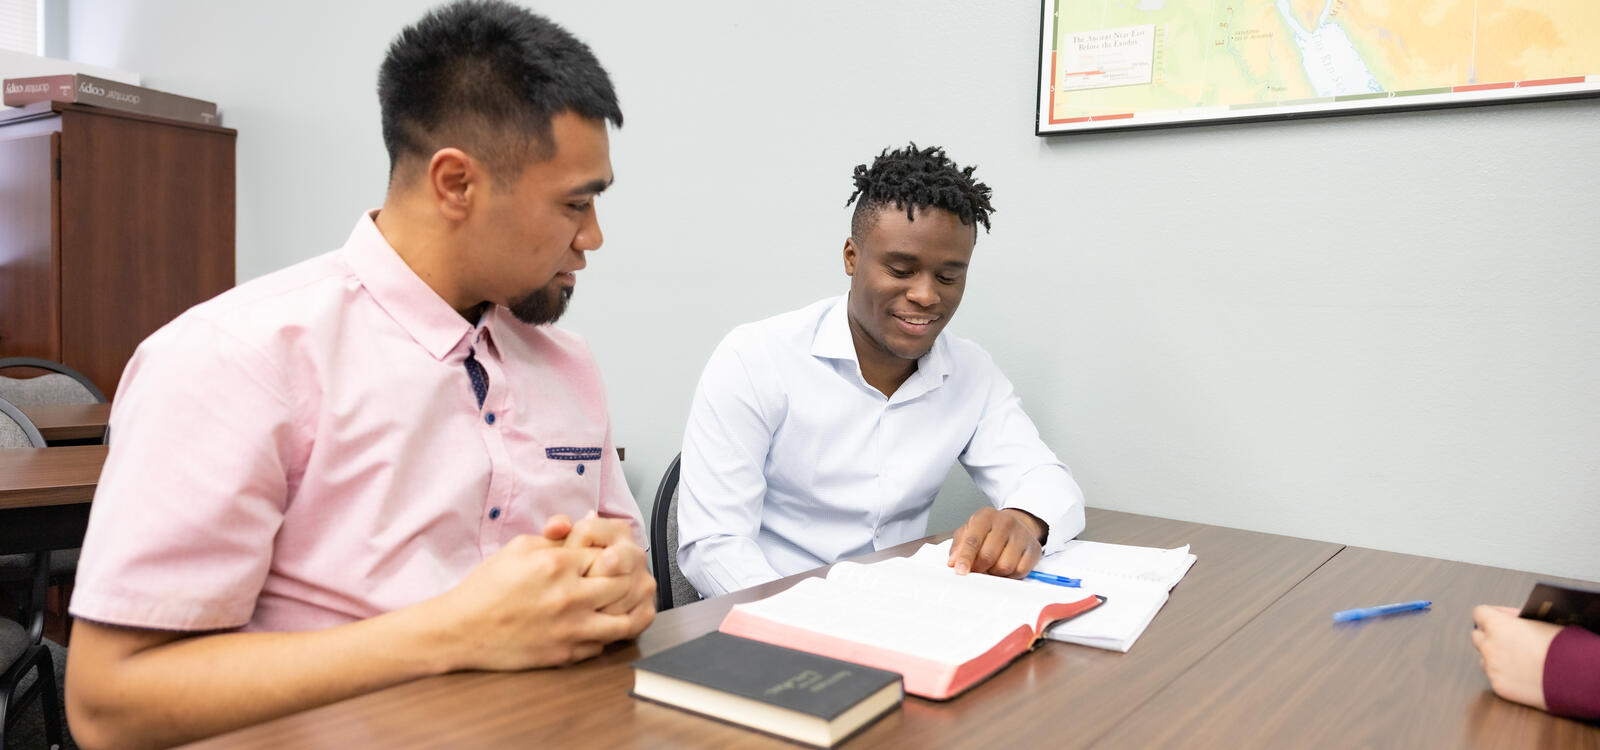 Two male students studying the Bible together and smiling.